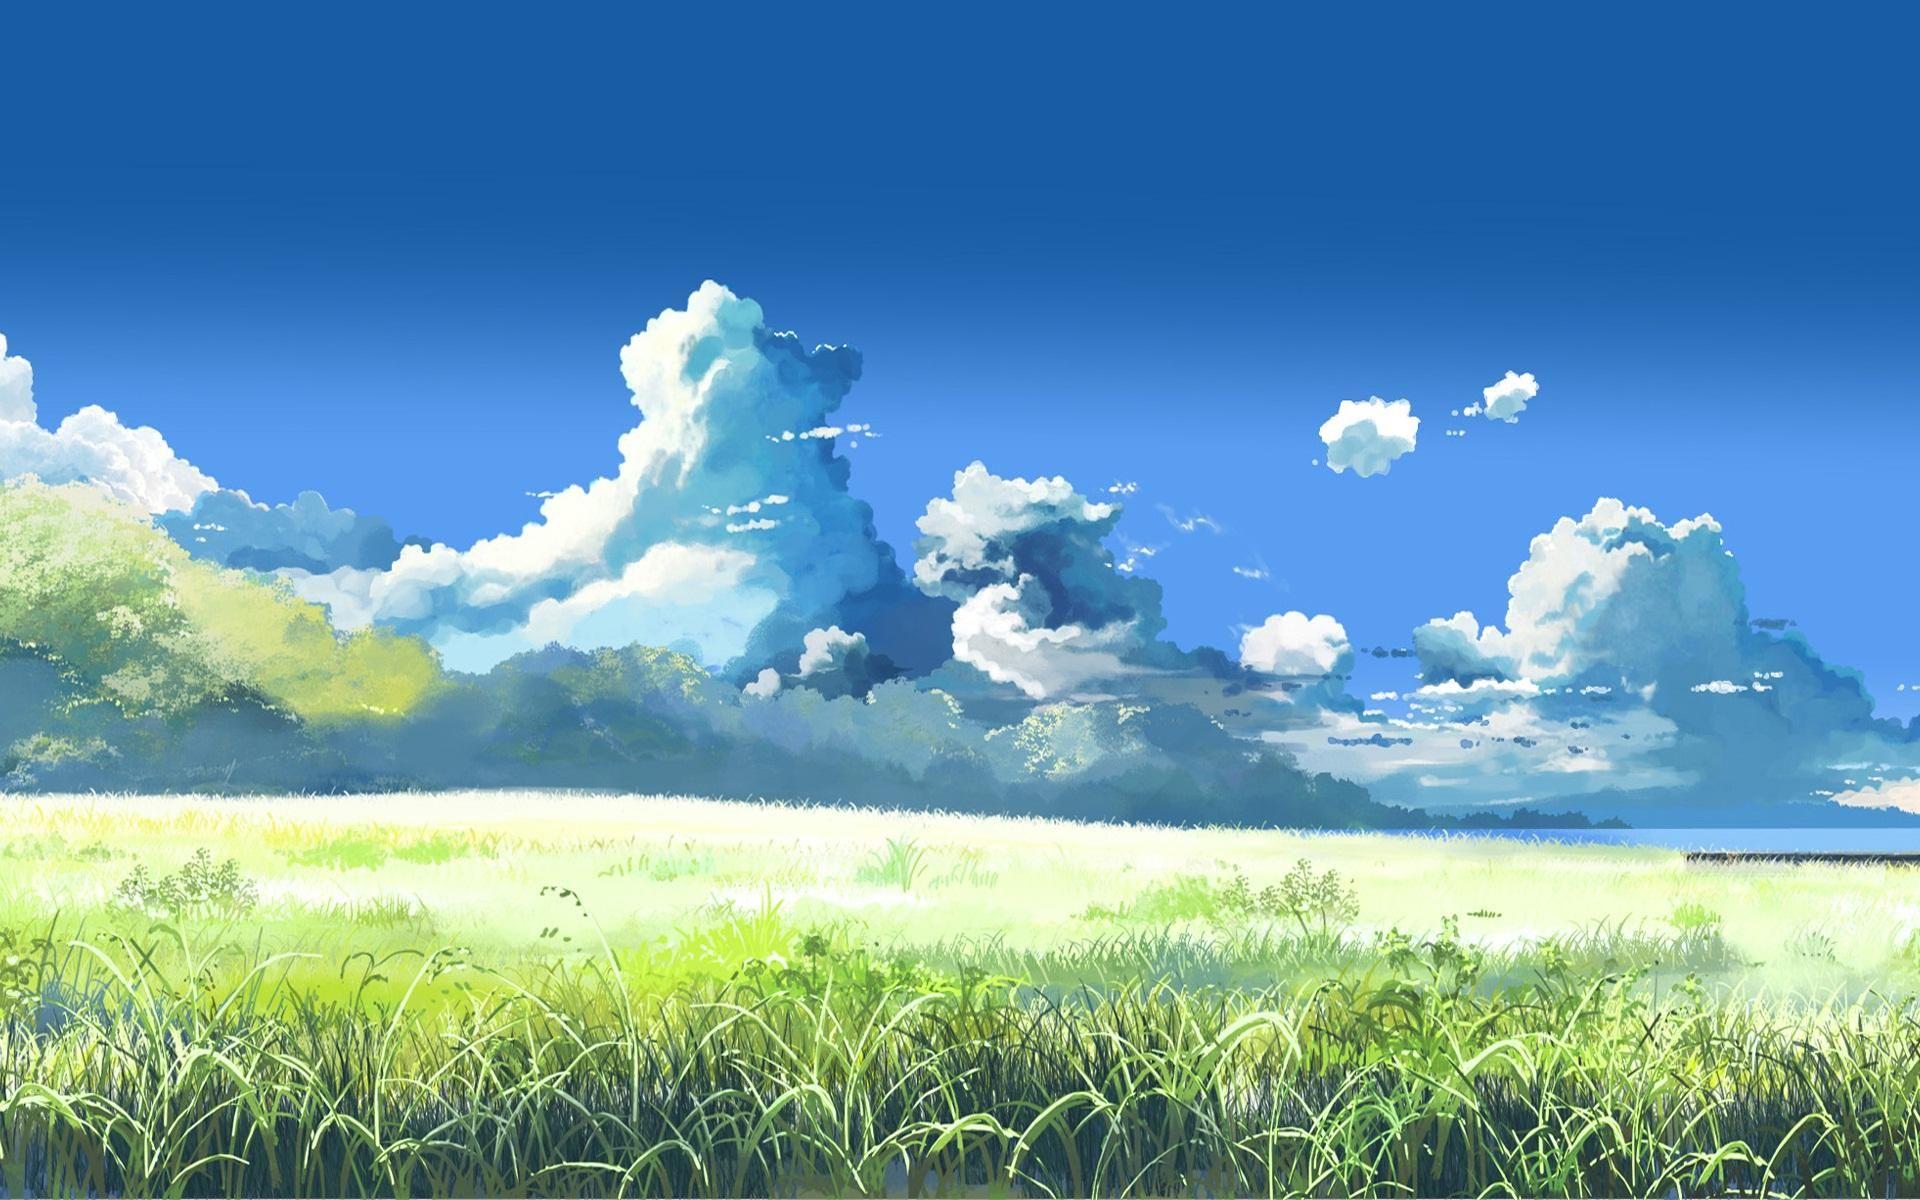 Anime Landscape 1920x1200 Anime Scenery Anime Scenery Wallpaper Scenery Wallpaper